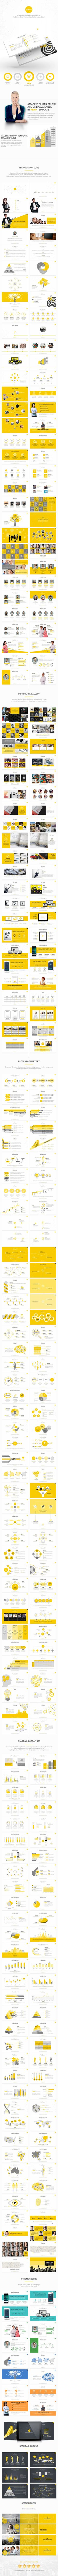 270+ Unique Custom Slides that consist from Handmade Infographic, Chart, Process, Timeline, SWOT Analysis, Portfolio, Gallery, Maps, General Information, Meet The Team, and another things that useful for your presentation.  #portfolio #powerpoint template #pptx • Available here → http://graphicriver.net/item/vero-15-connecting-your-business/9008138?s_rank=68&ref=pxcr